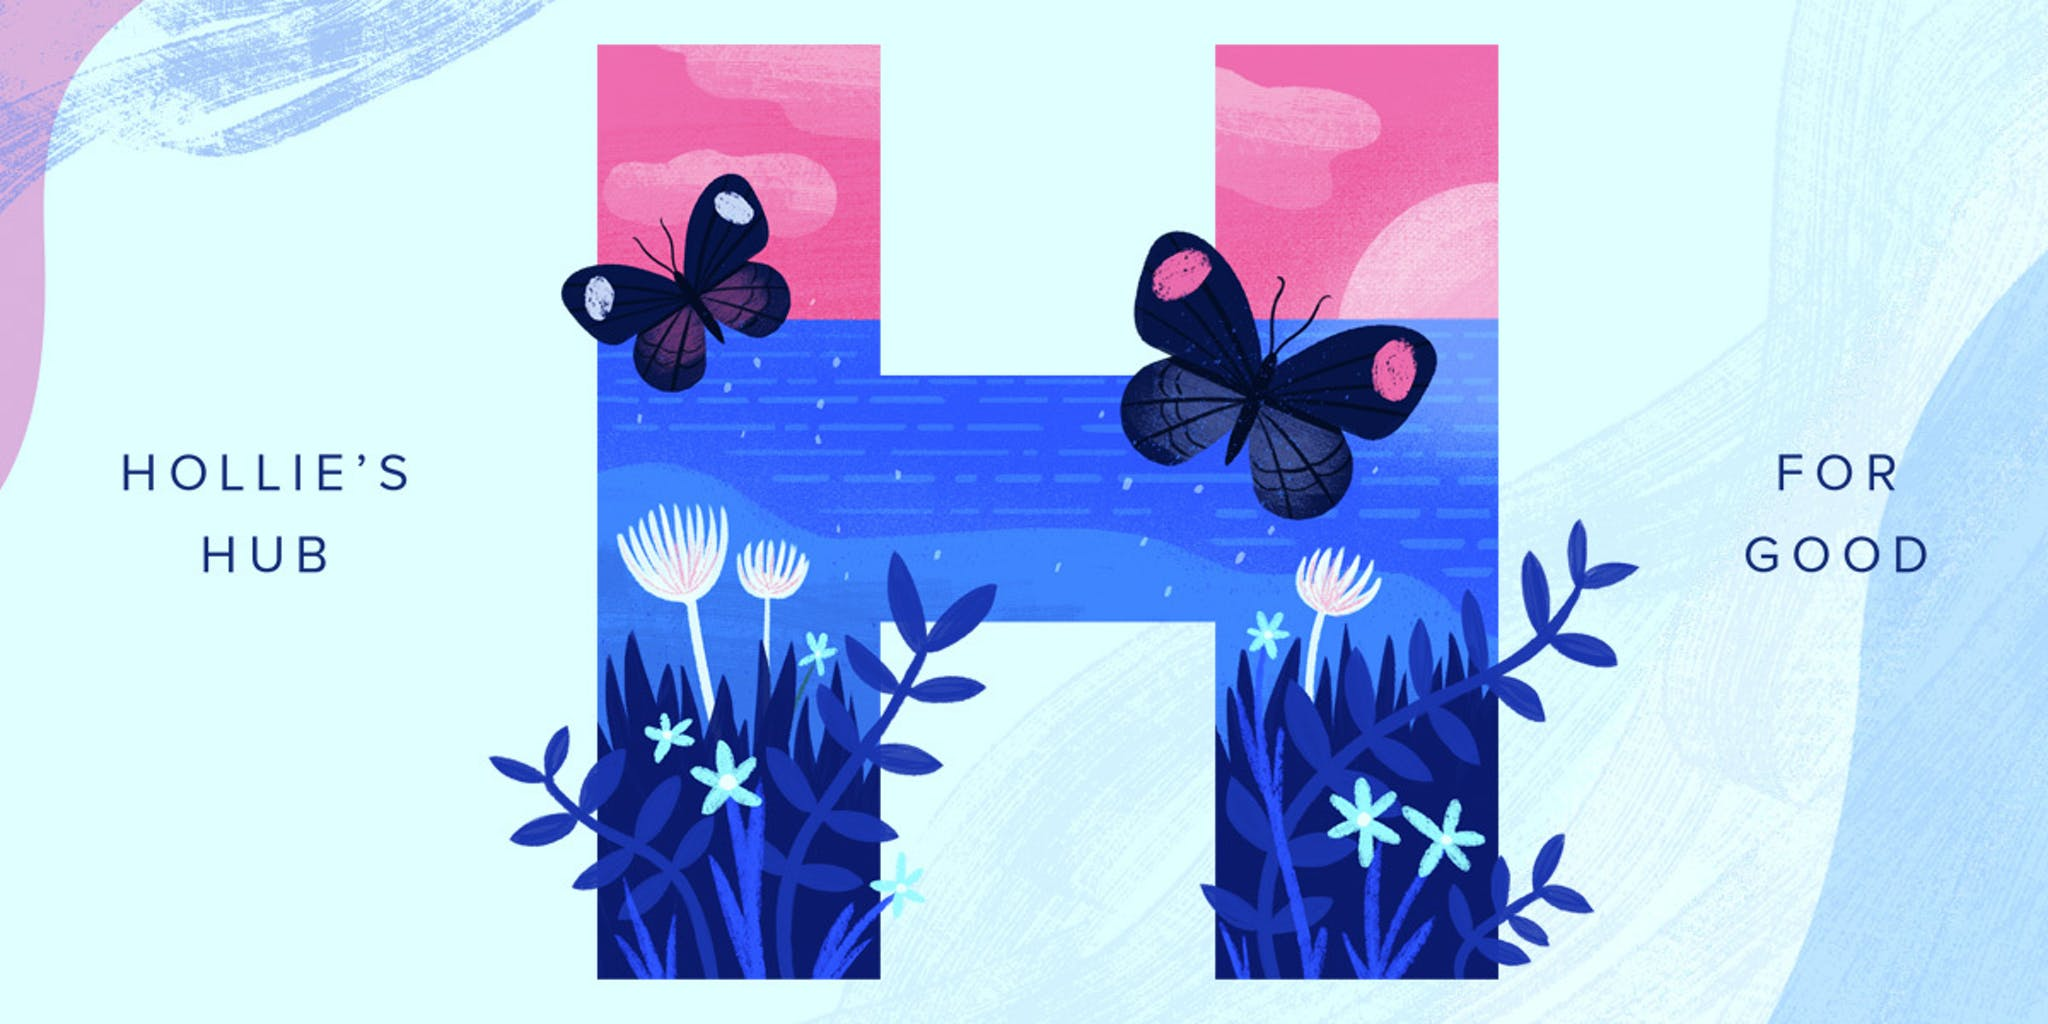 Hollie's Hub for Good: Support and Resources | DigitalOcean